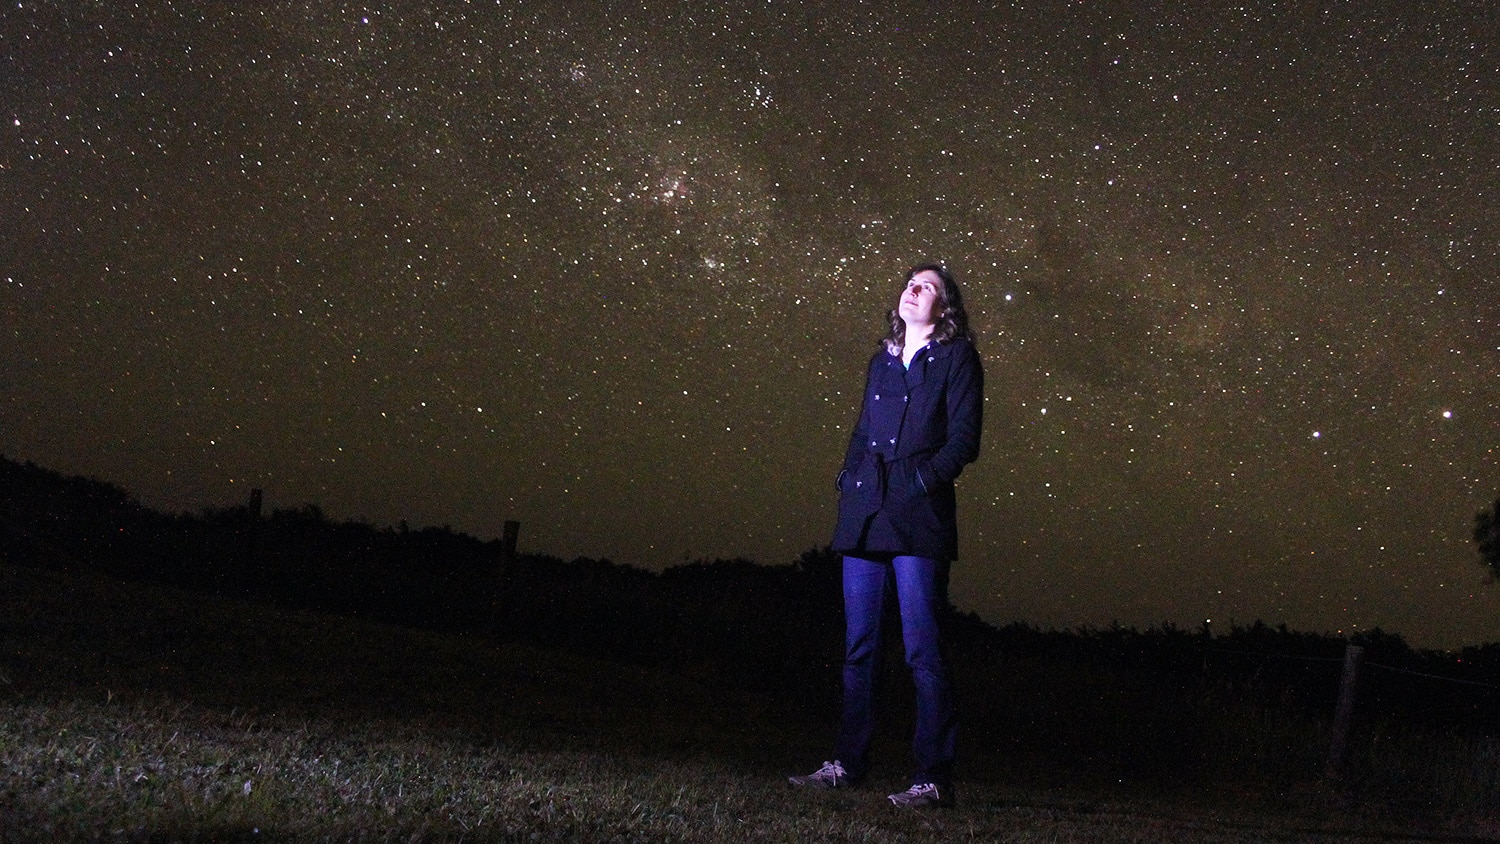 Astrophysicist Katie Mack stares up at a starry night sky